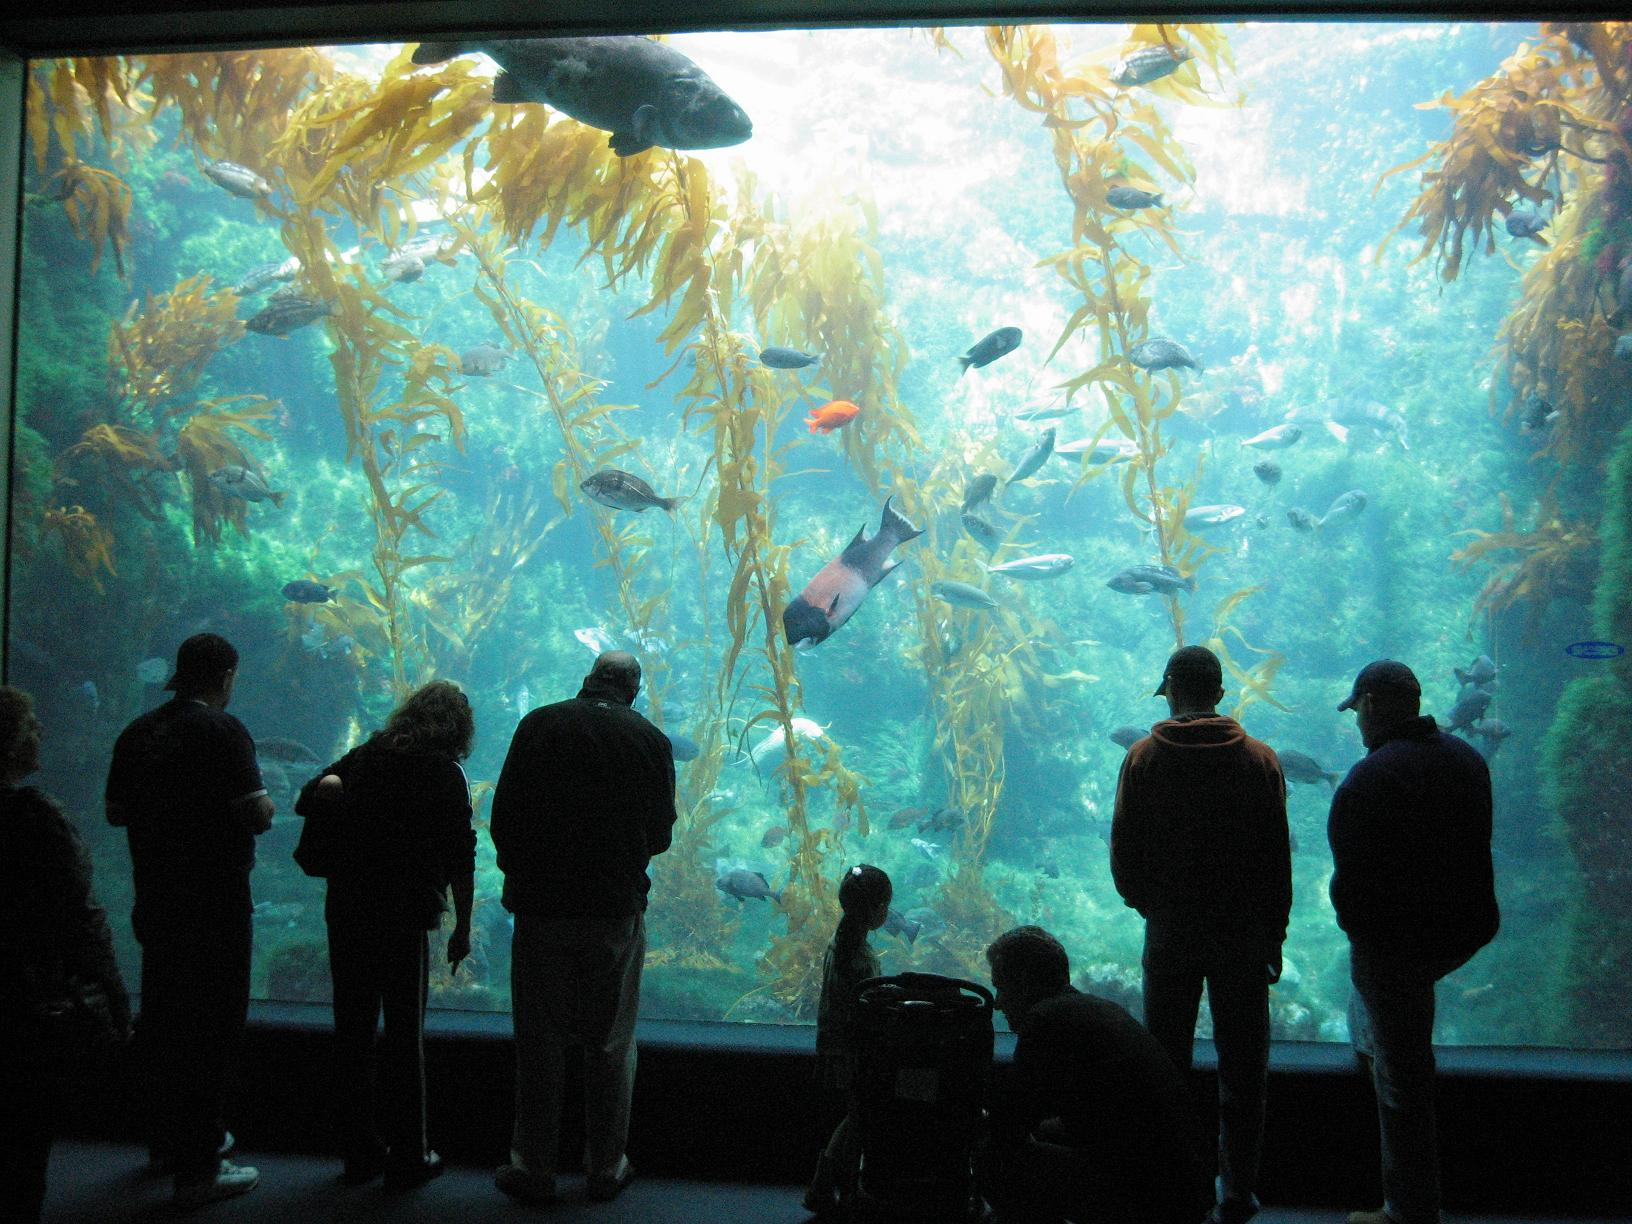 Visitors are able to see 60 ocean habitats and participate in a variety of hands-on activities related to ocean science.